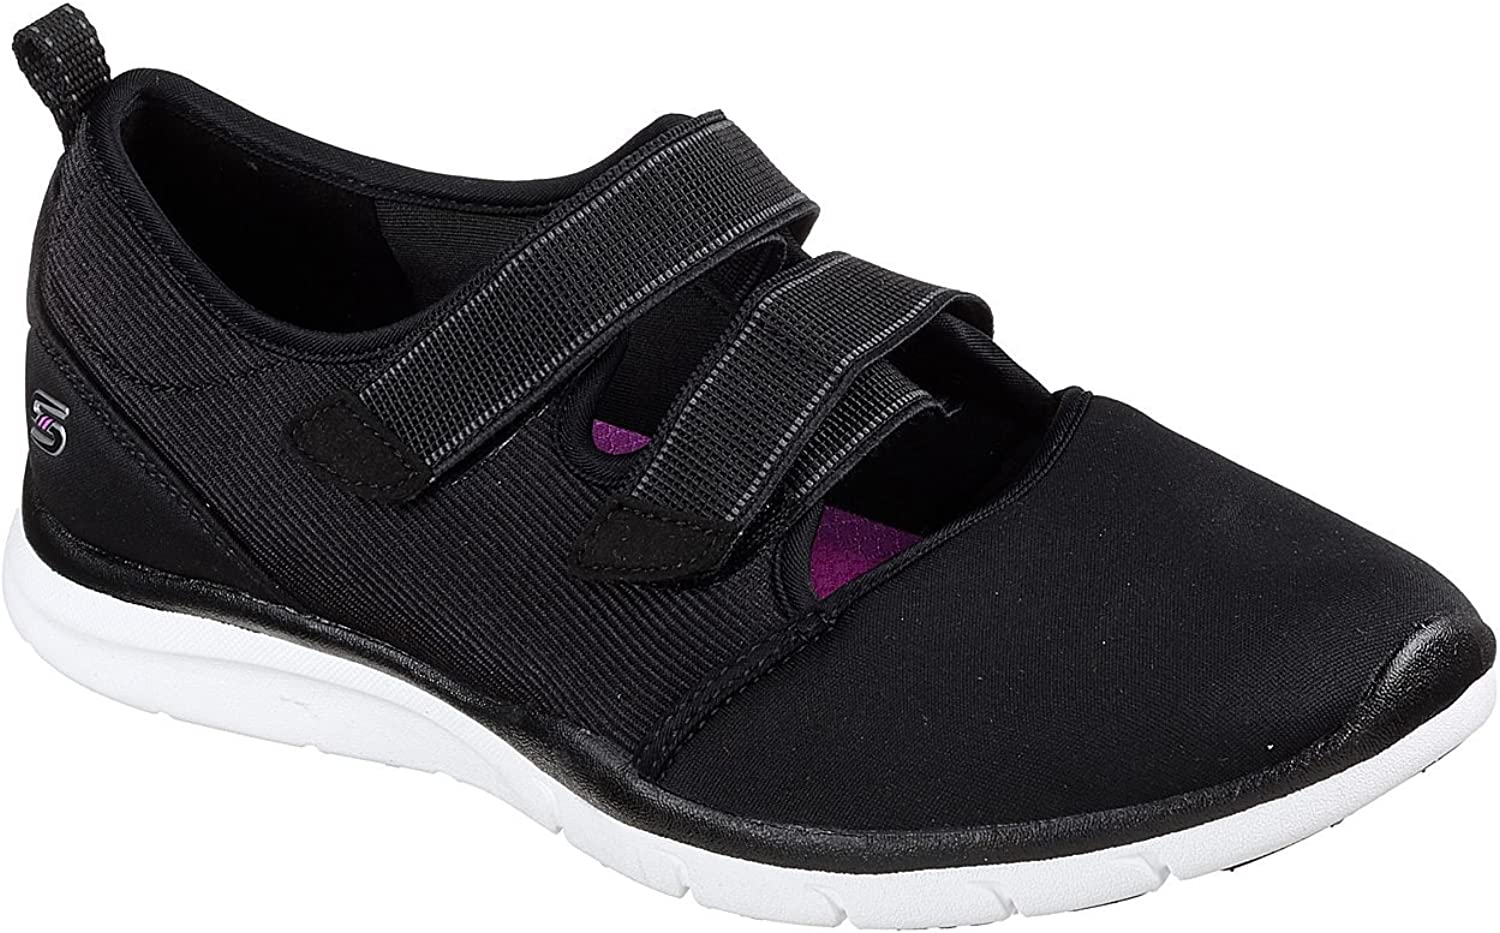 Skechers Women's Gratis Cloud - Psyched-up Lifestyle shoes